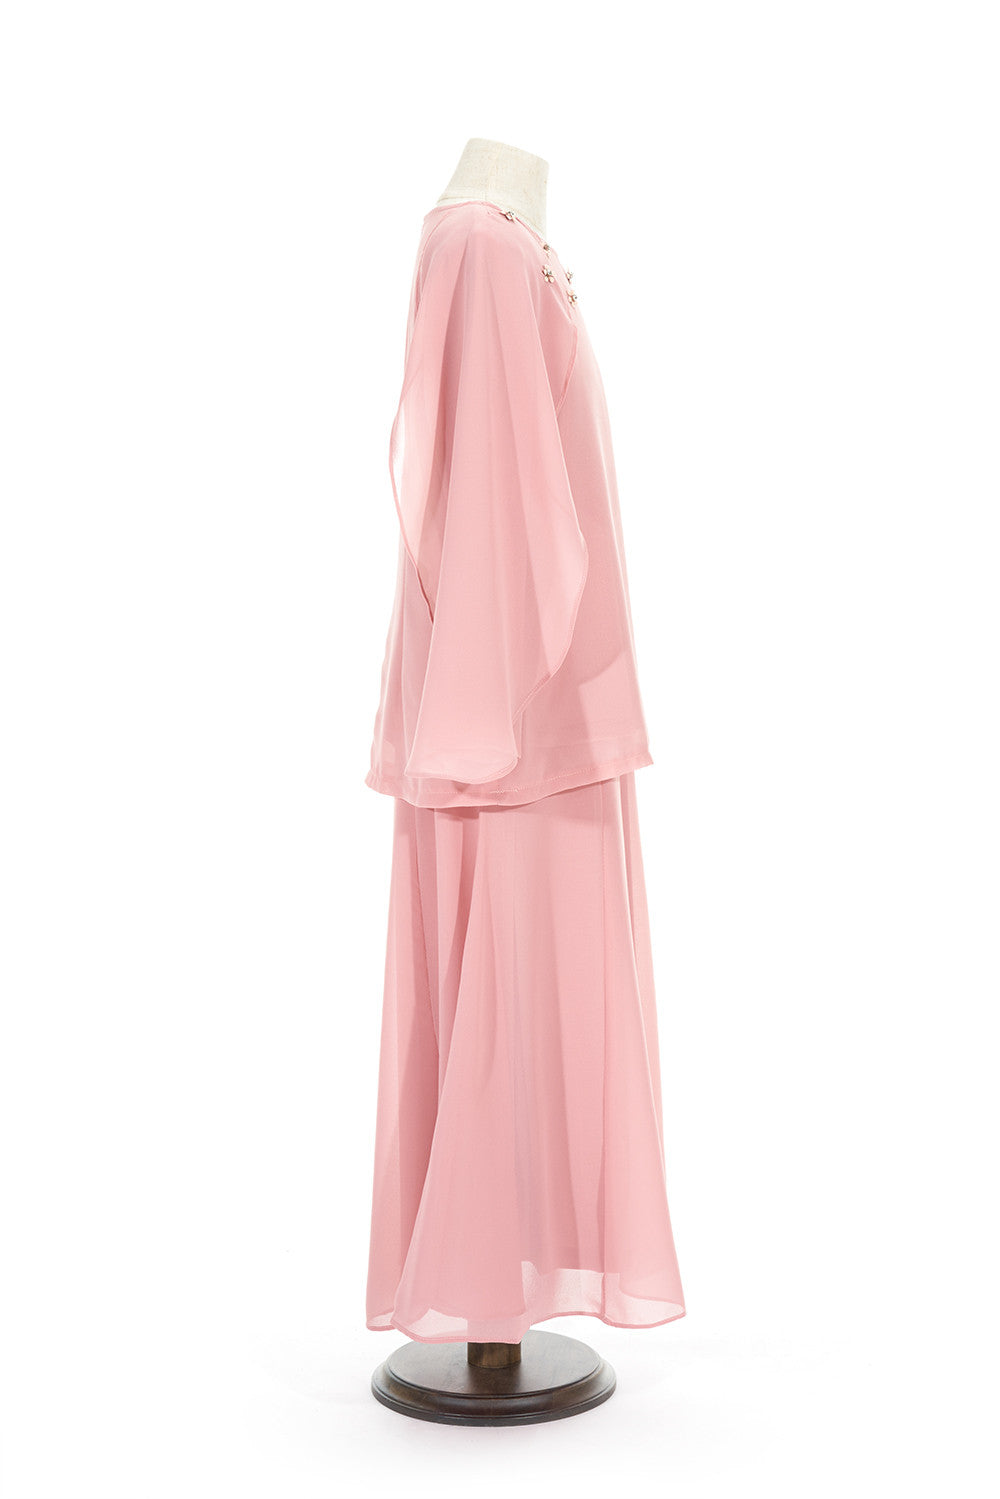 Petite Batwing Chiffon Top with Skirt in Dusty Pink